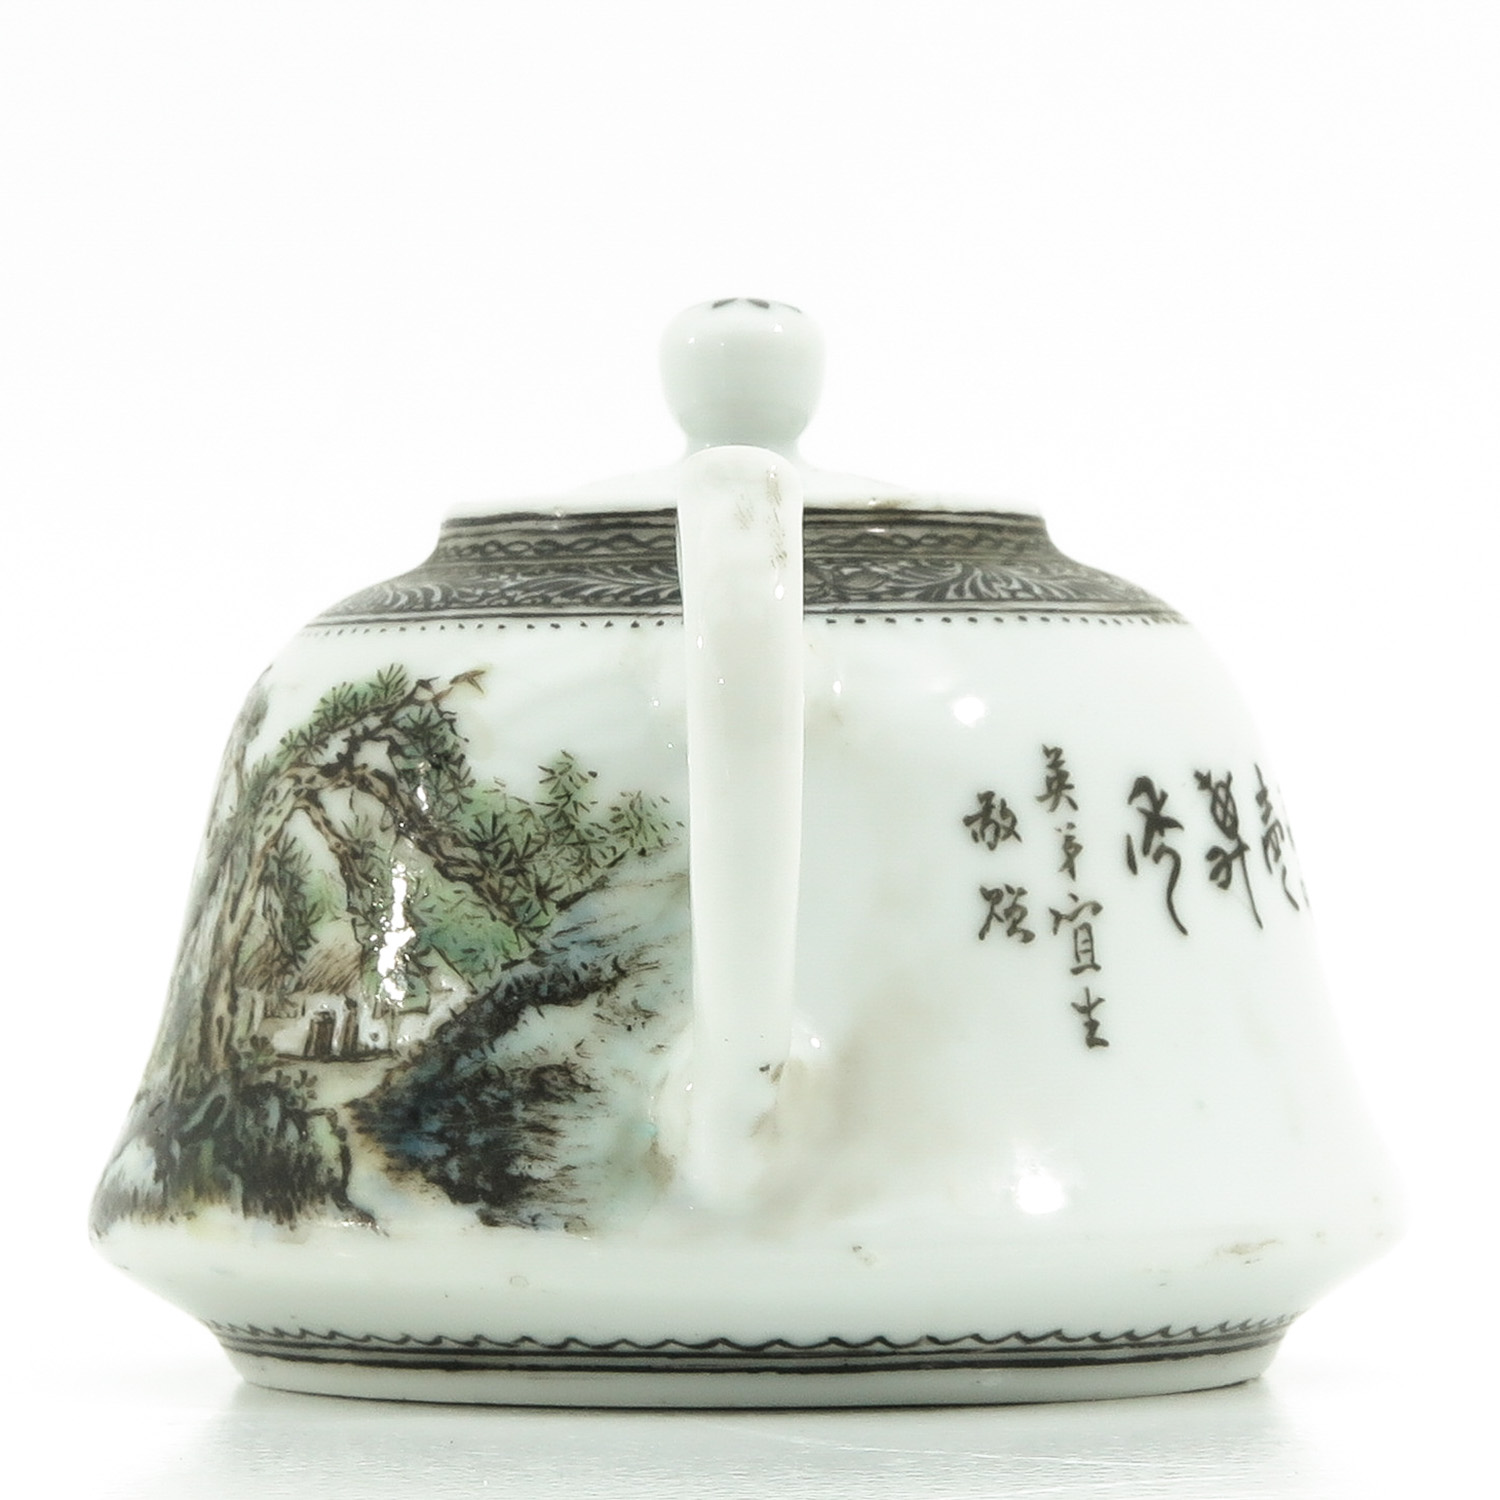 A Chinese Teapot - Image 2 of 10